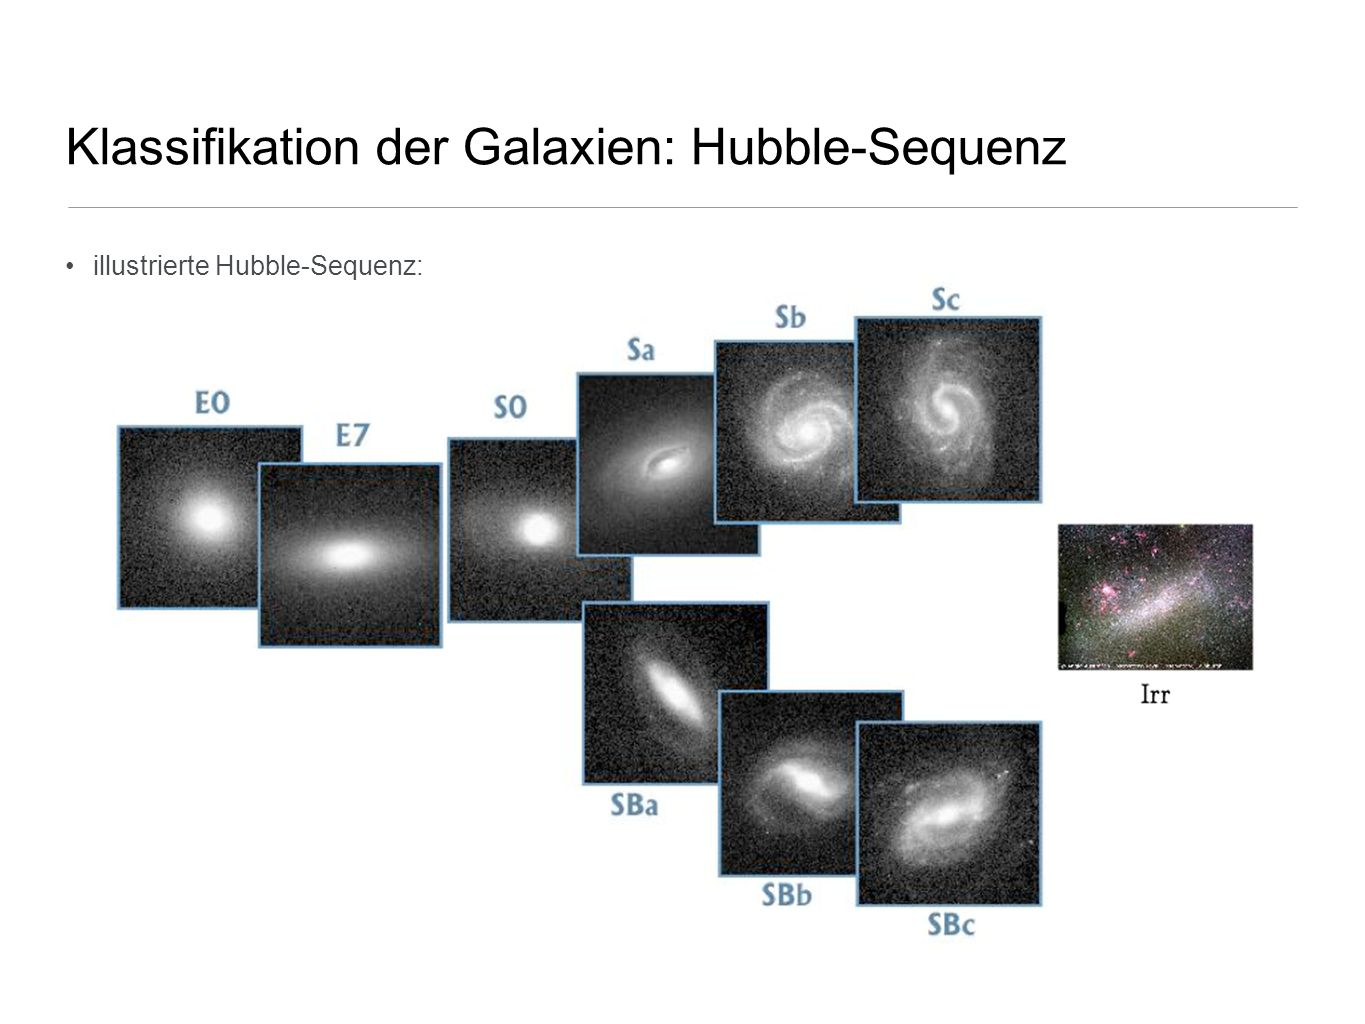 Klassifikation der Galaxien: Hubble-Sequenz illustrierte Hubble-Sequenz: